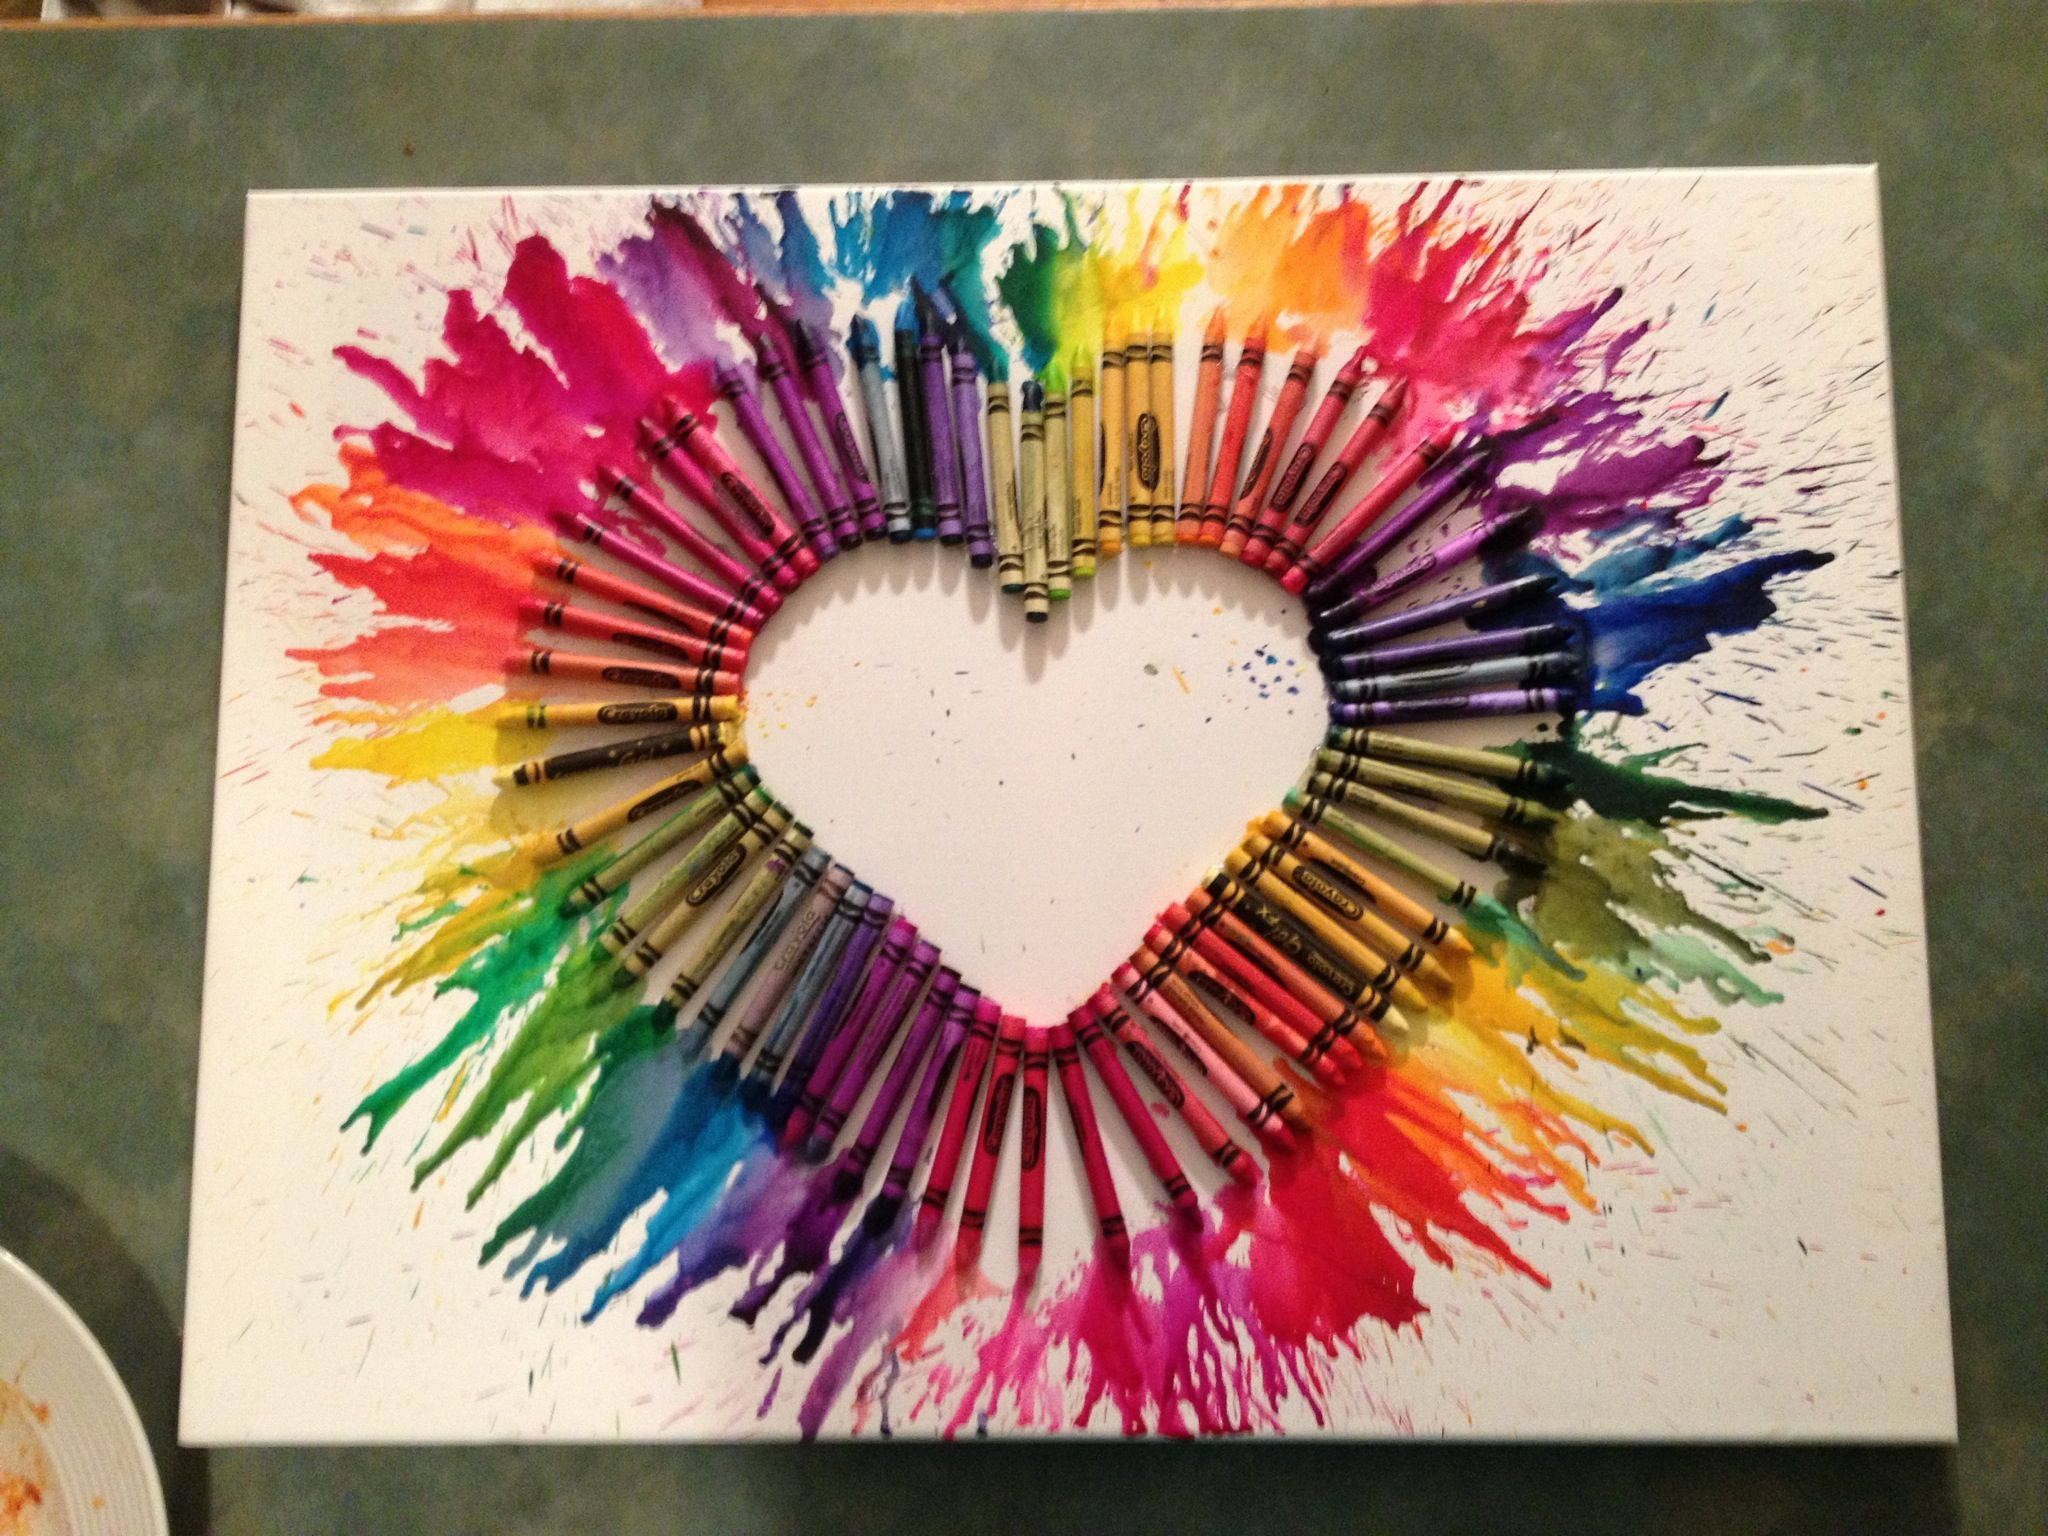 Best ideas about Art And Crafts . Save or Pin Crayon art Arts and crafts project Now.